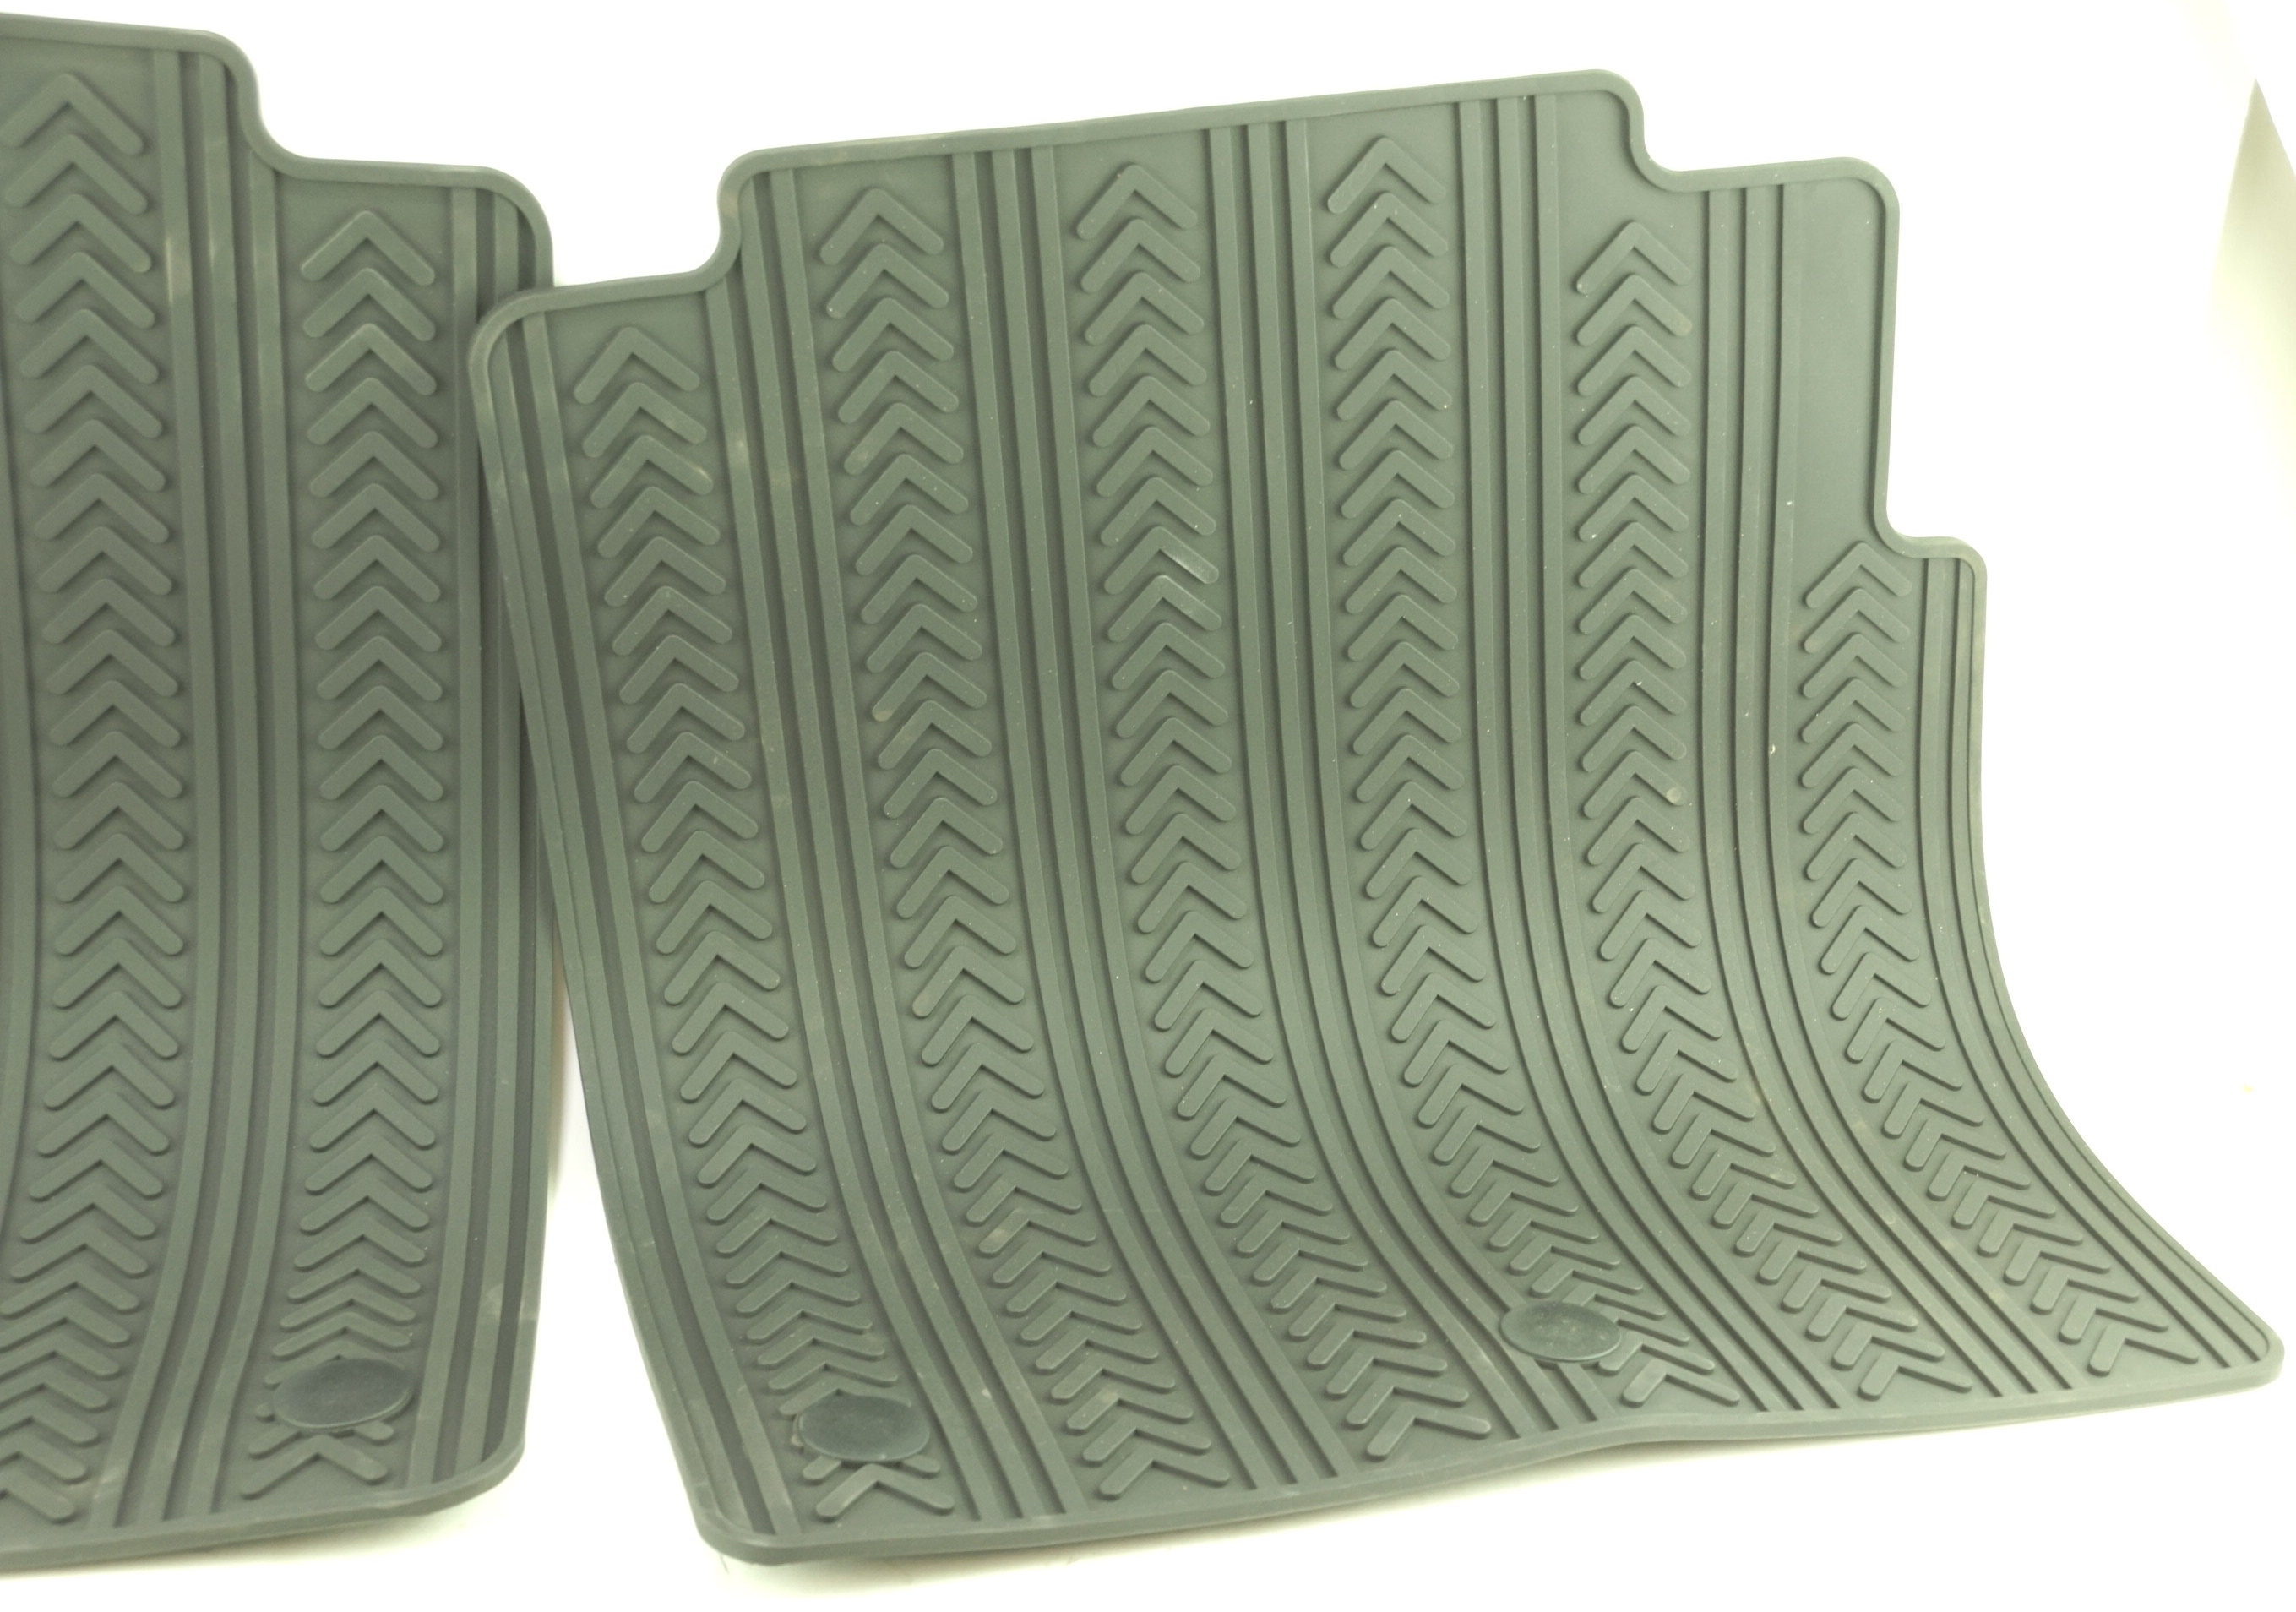 New OEM 82213479 Mopar Town & Country Front & 2nd Row Black Rubber Floor Mats - image 9